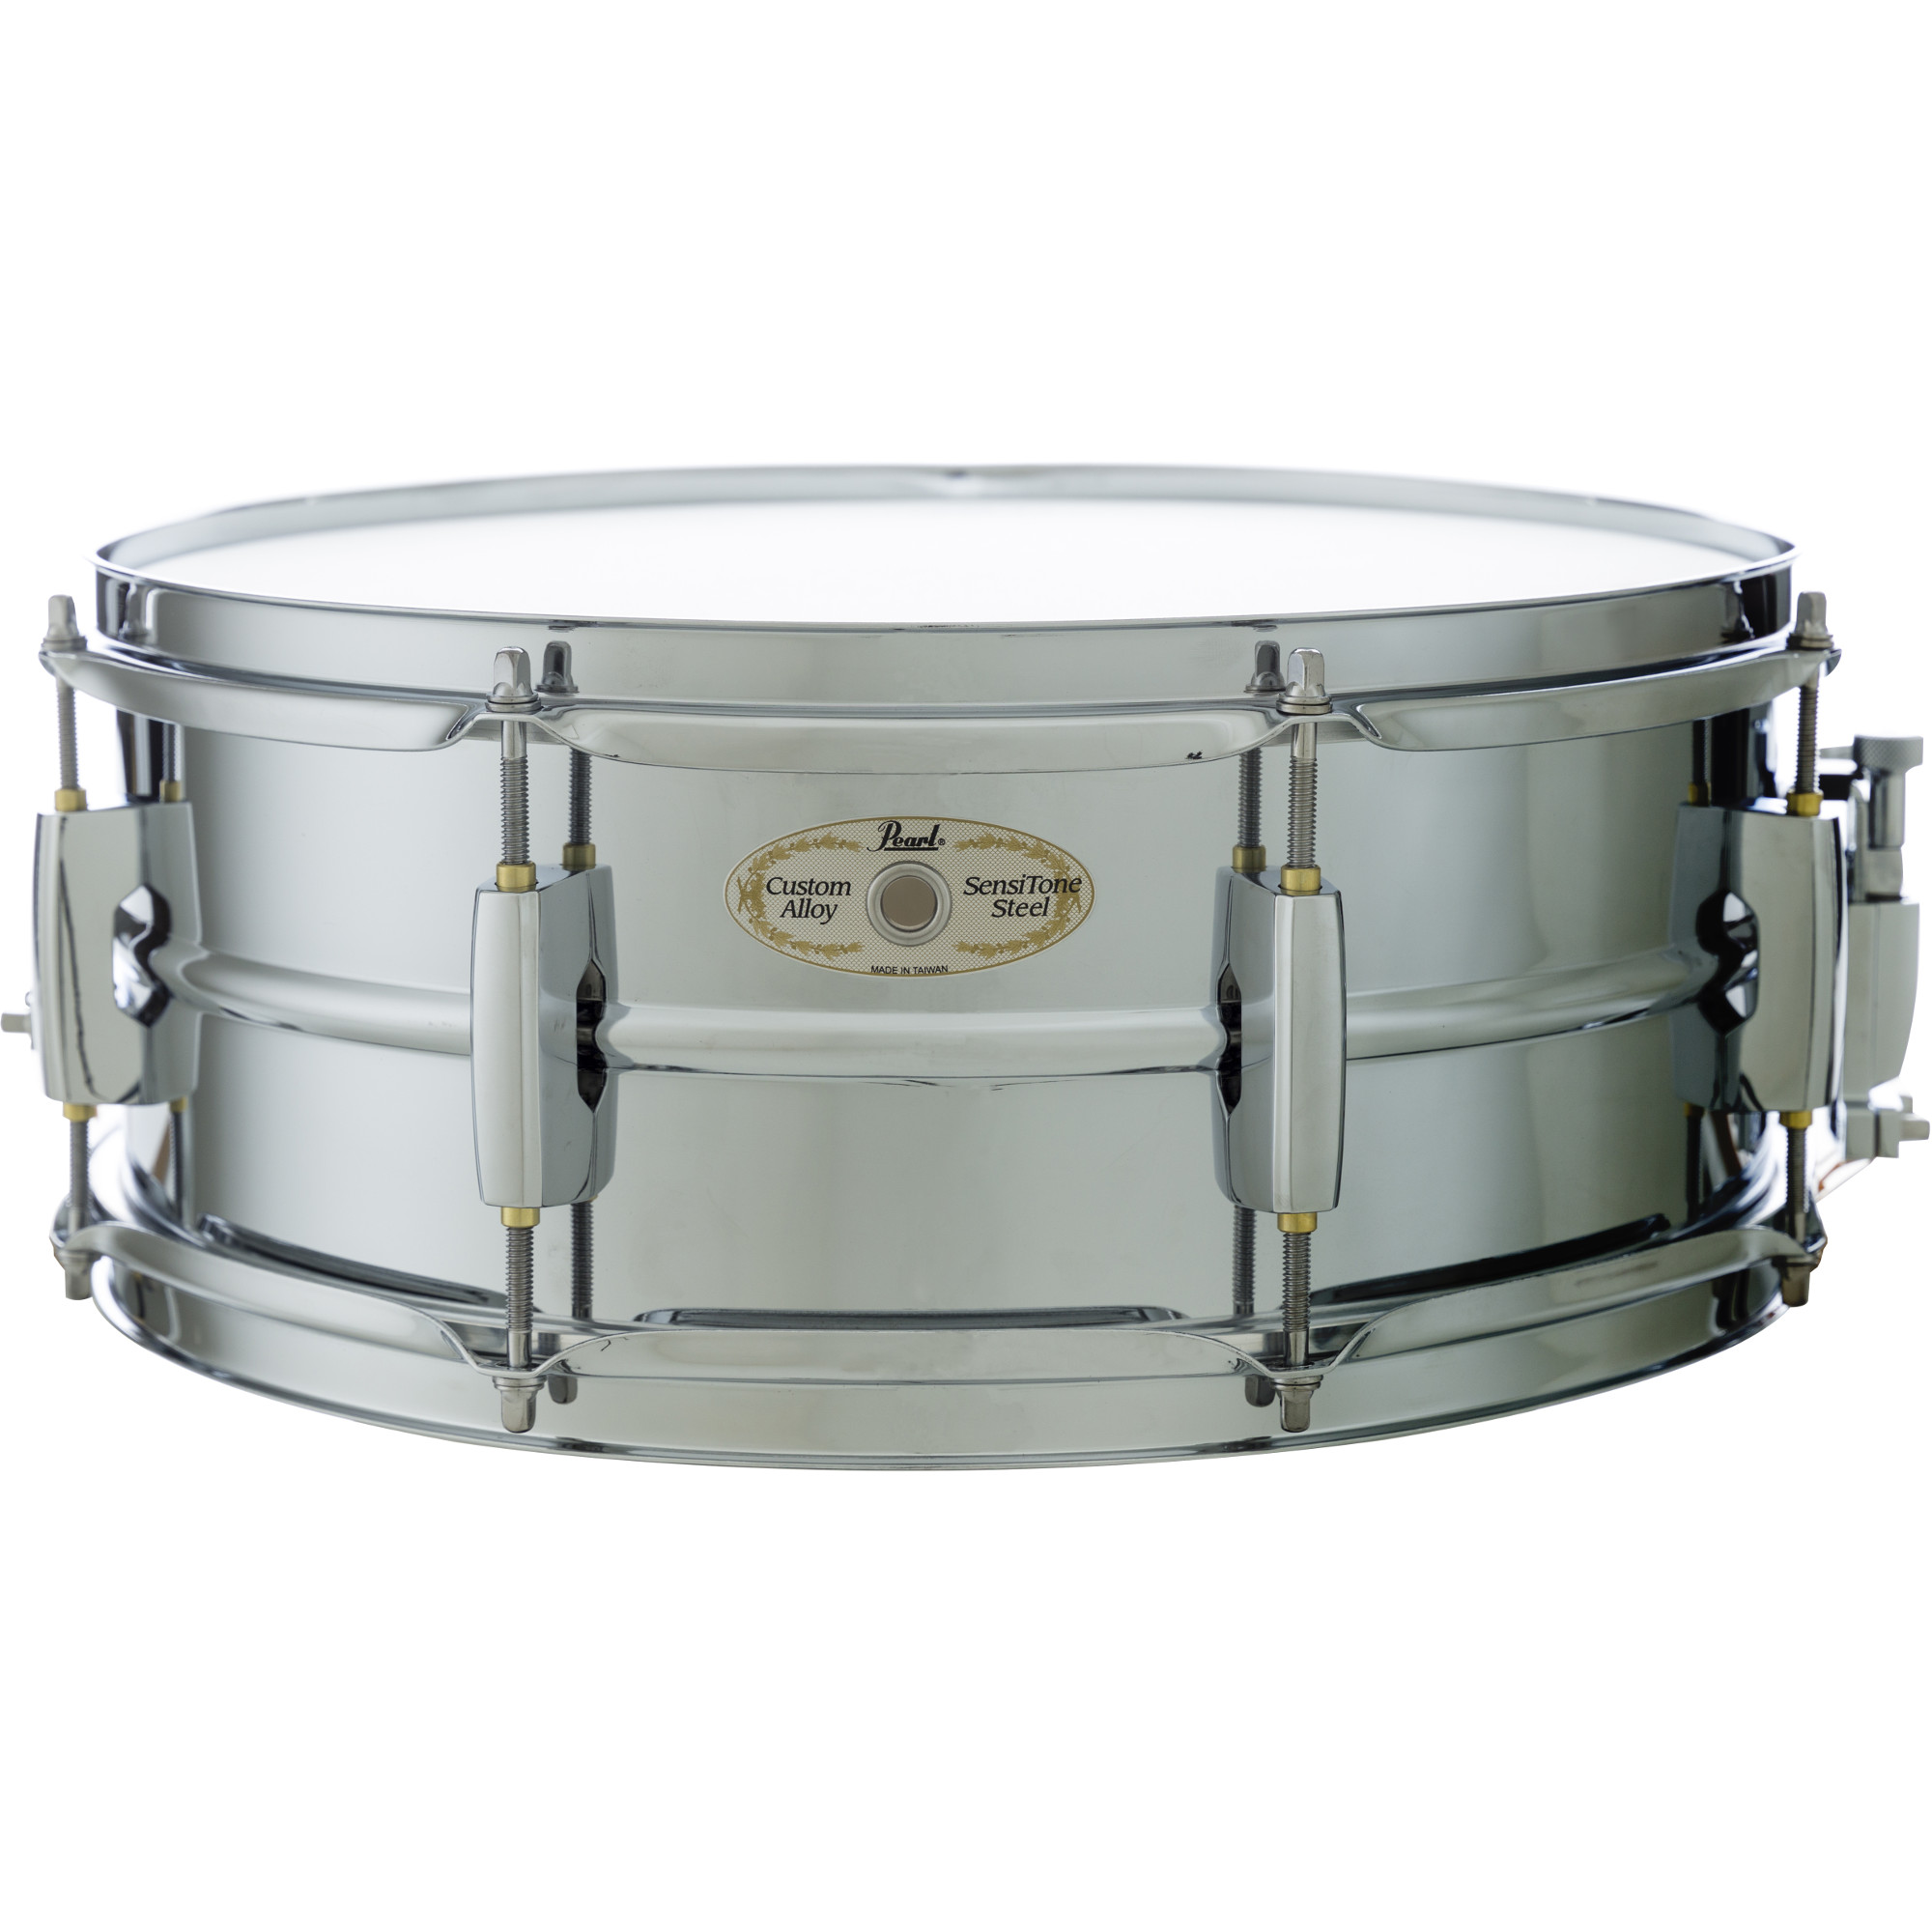 Pearl LMSS1455 Limited SensiTone snare drum, 14 x 5.5 inch, chrome